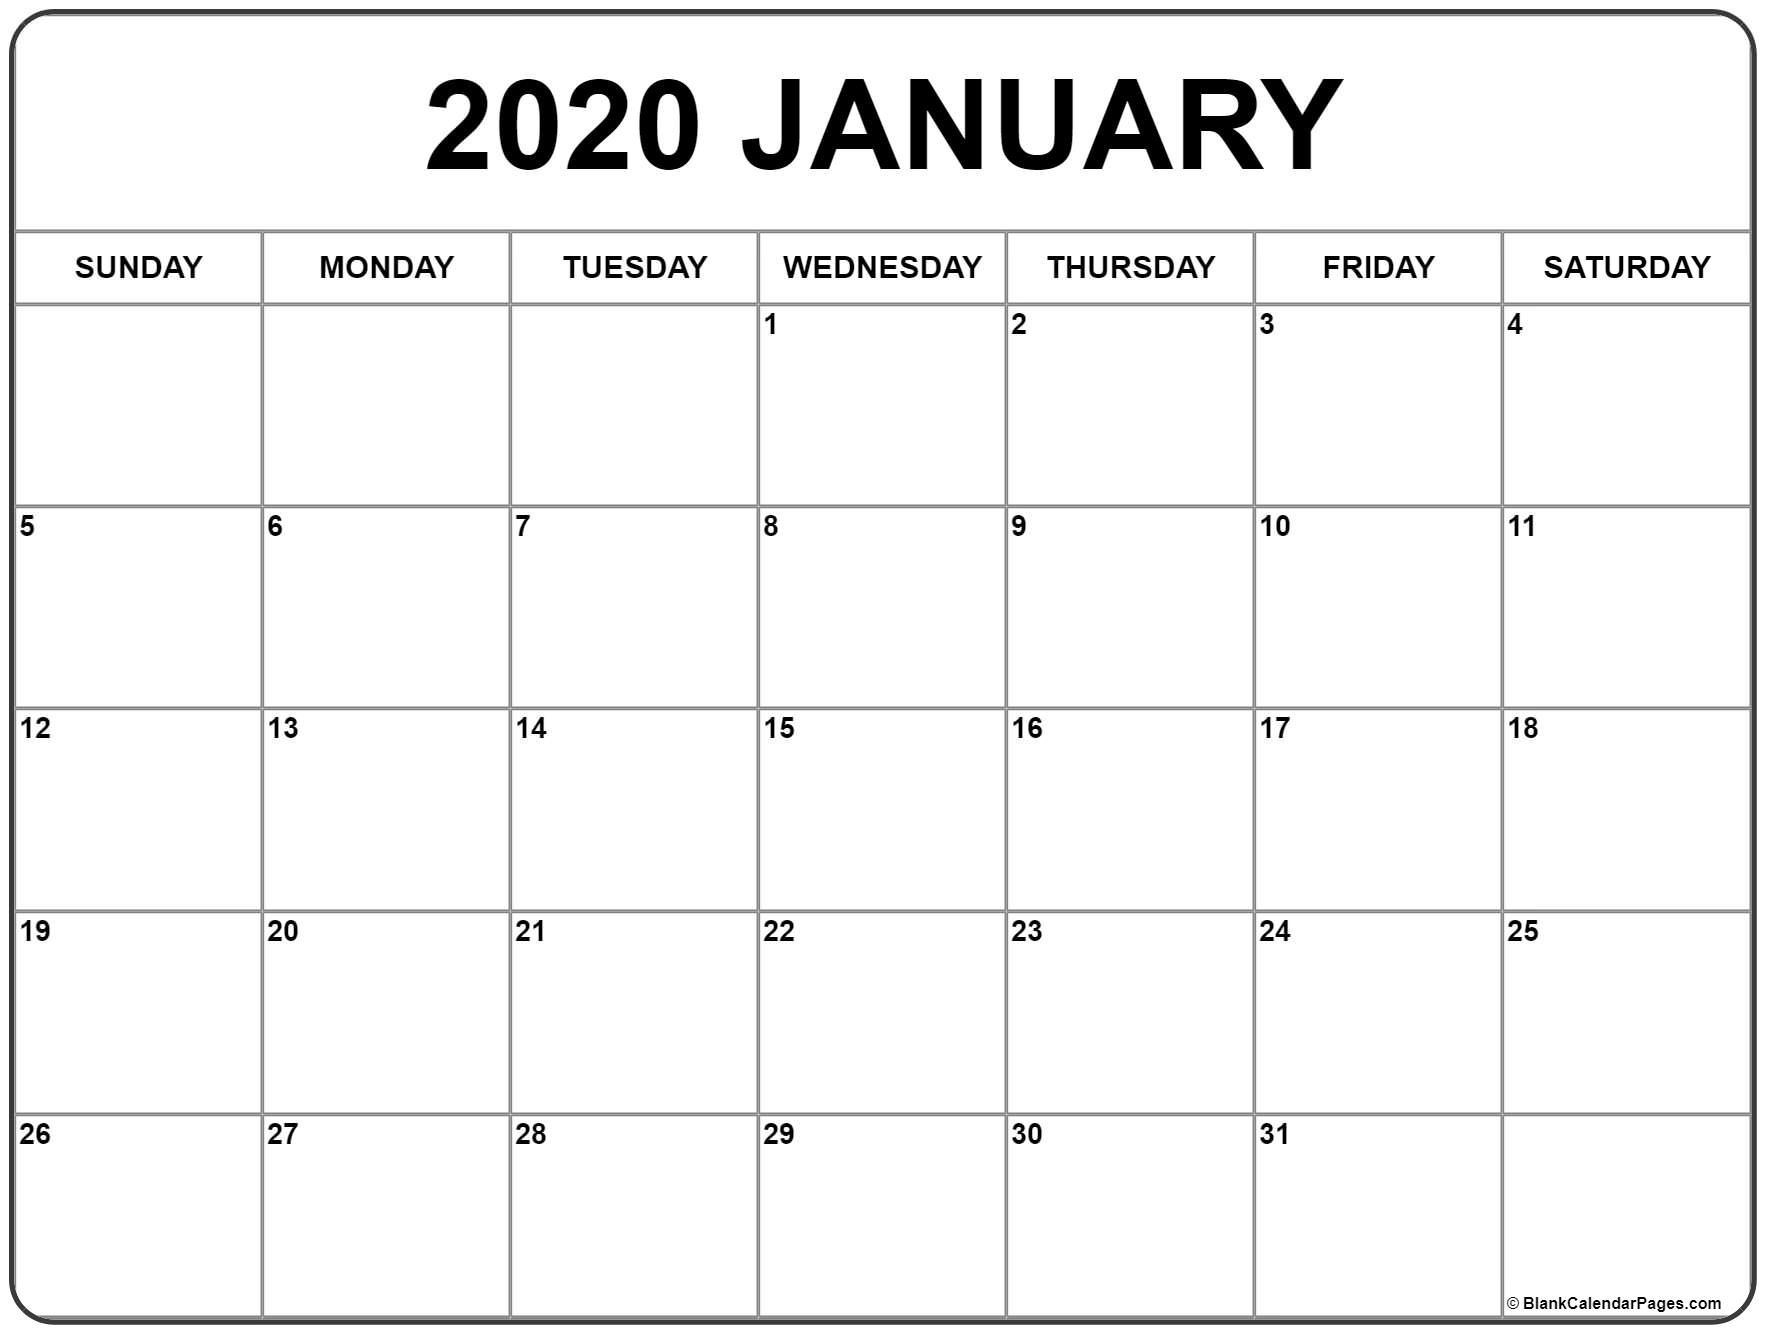 January 2020 Calendar | Free Printable Monthly Calendars-August 2020 Thru December 2020 Calendar Template